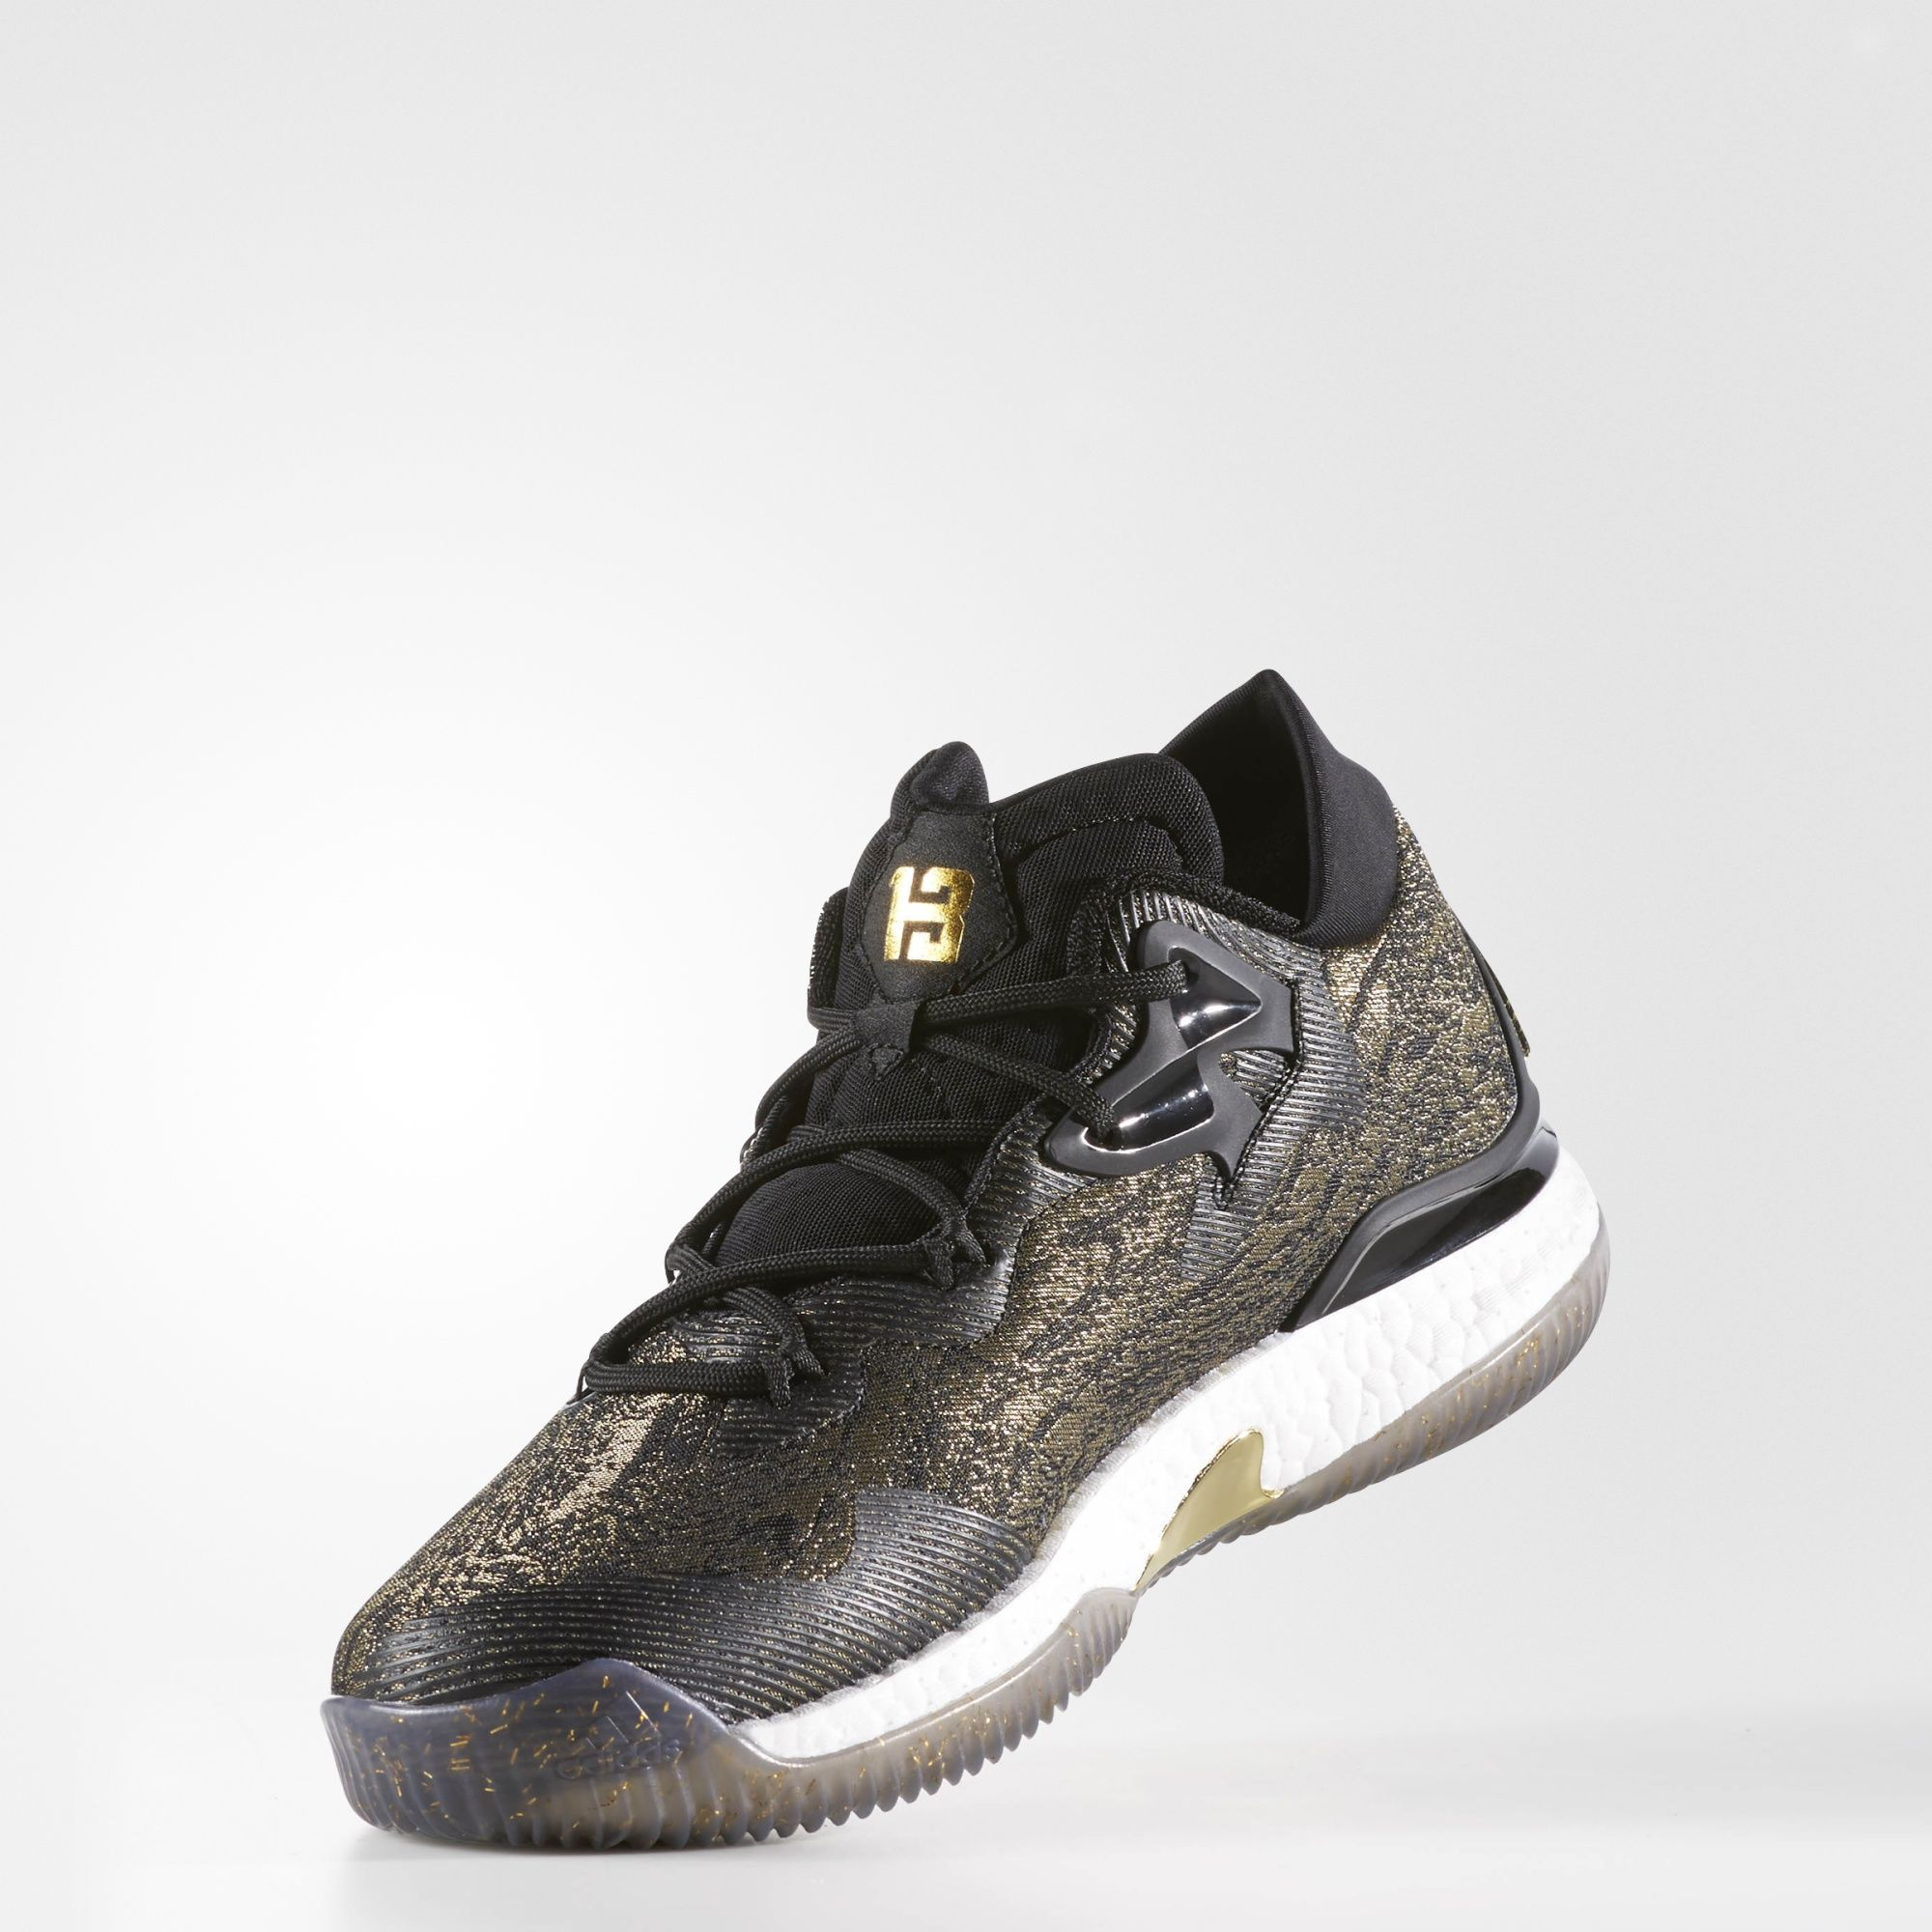 Adidas Crazylight Boost 2016 – Black-Gold-Angle